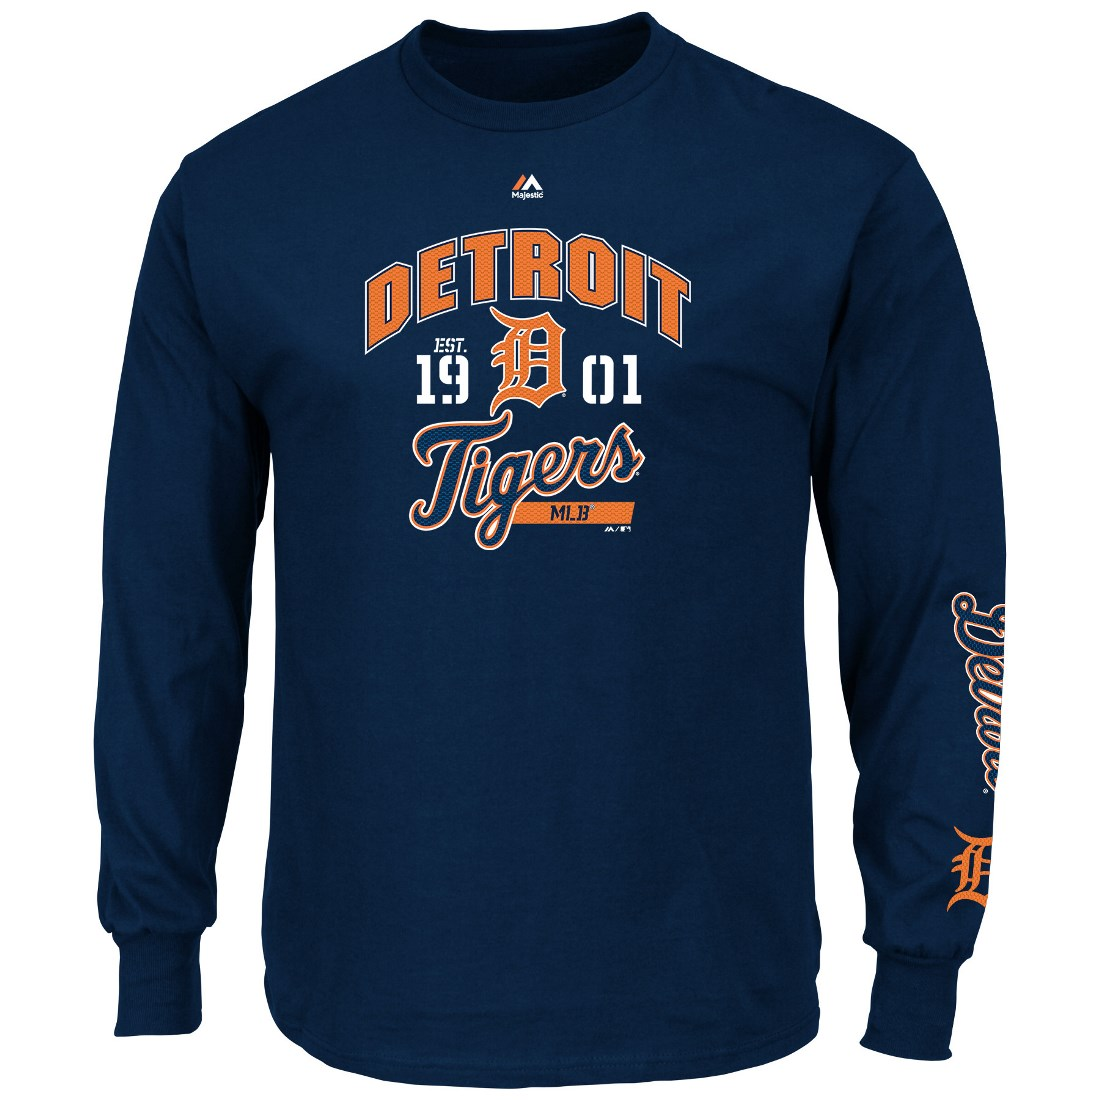 "Detroit Tigers Majestic MLB ""Flawless"" Men's Long Sleeve T-Shirt - Navy"